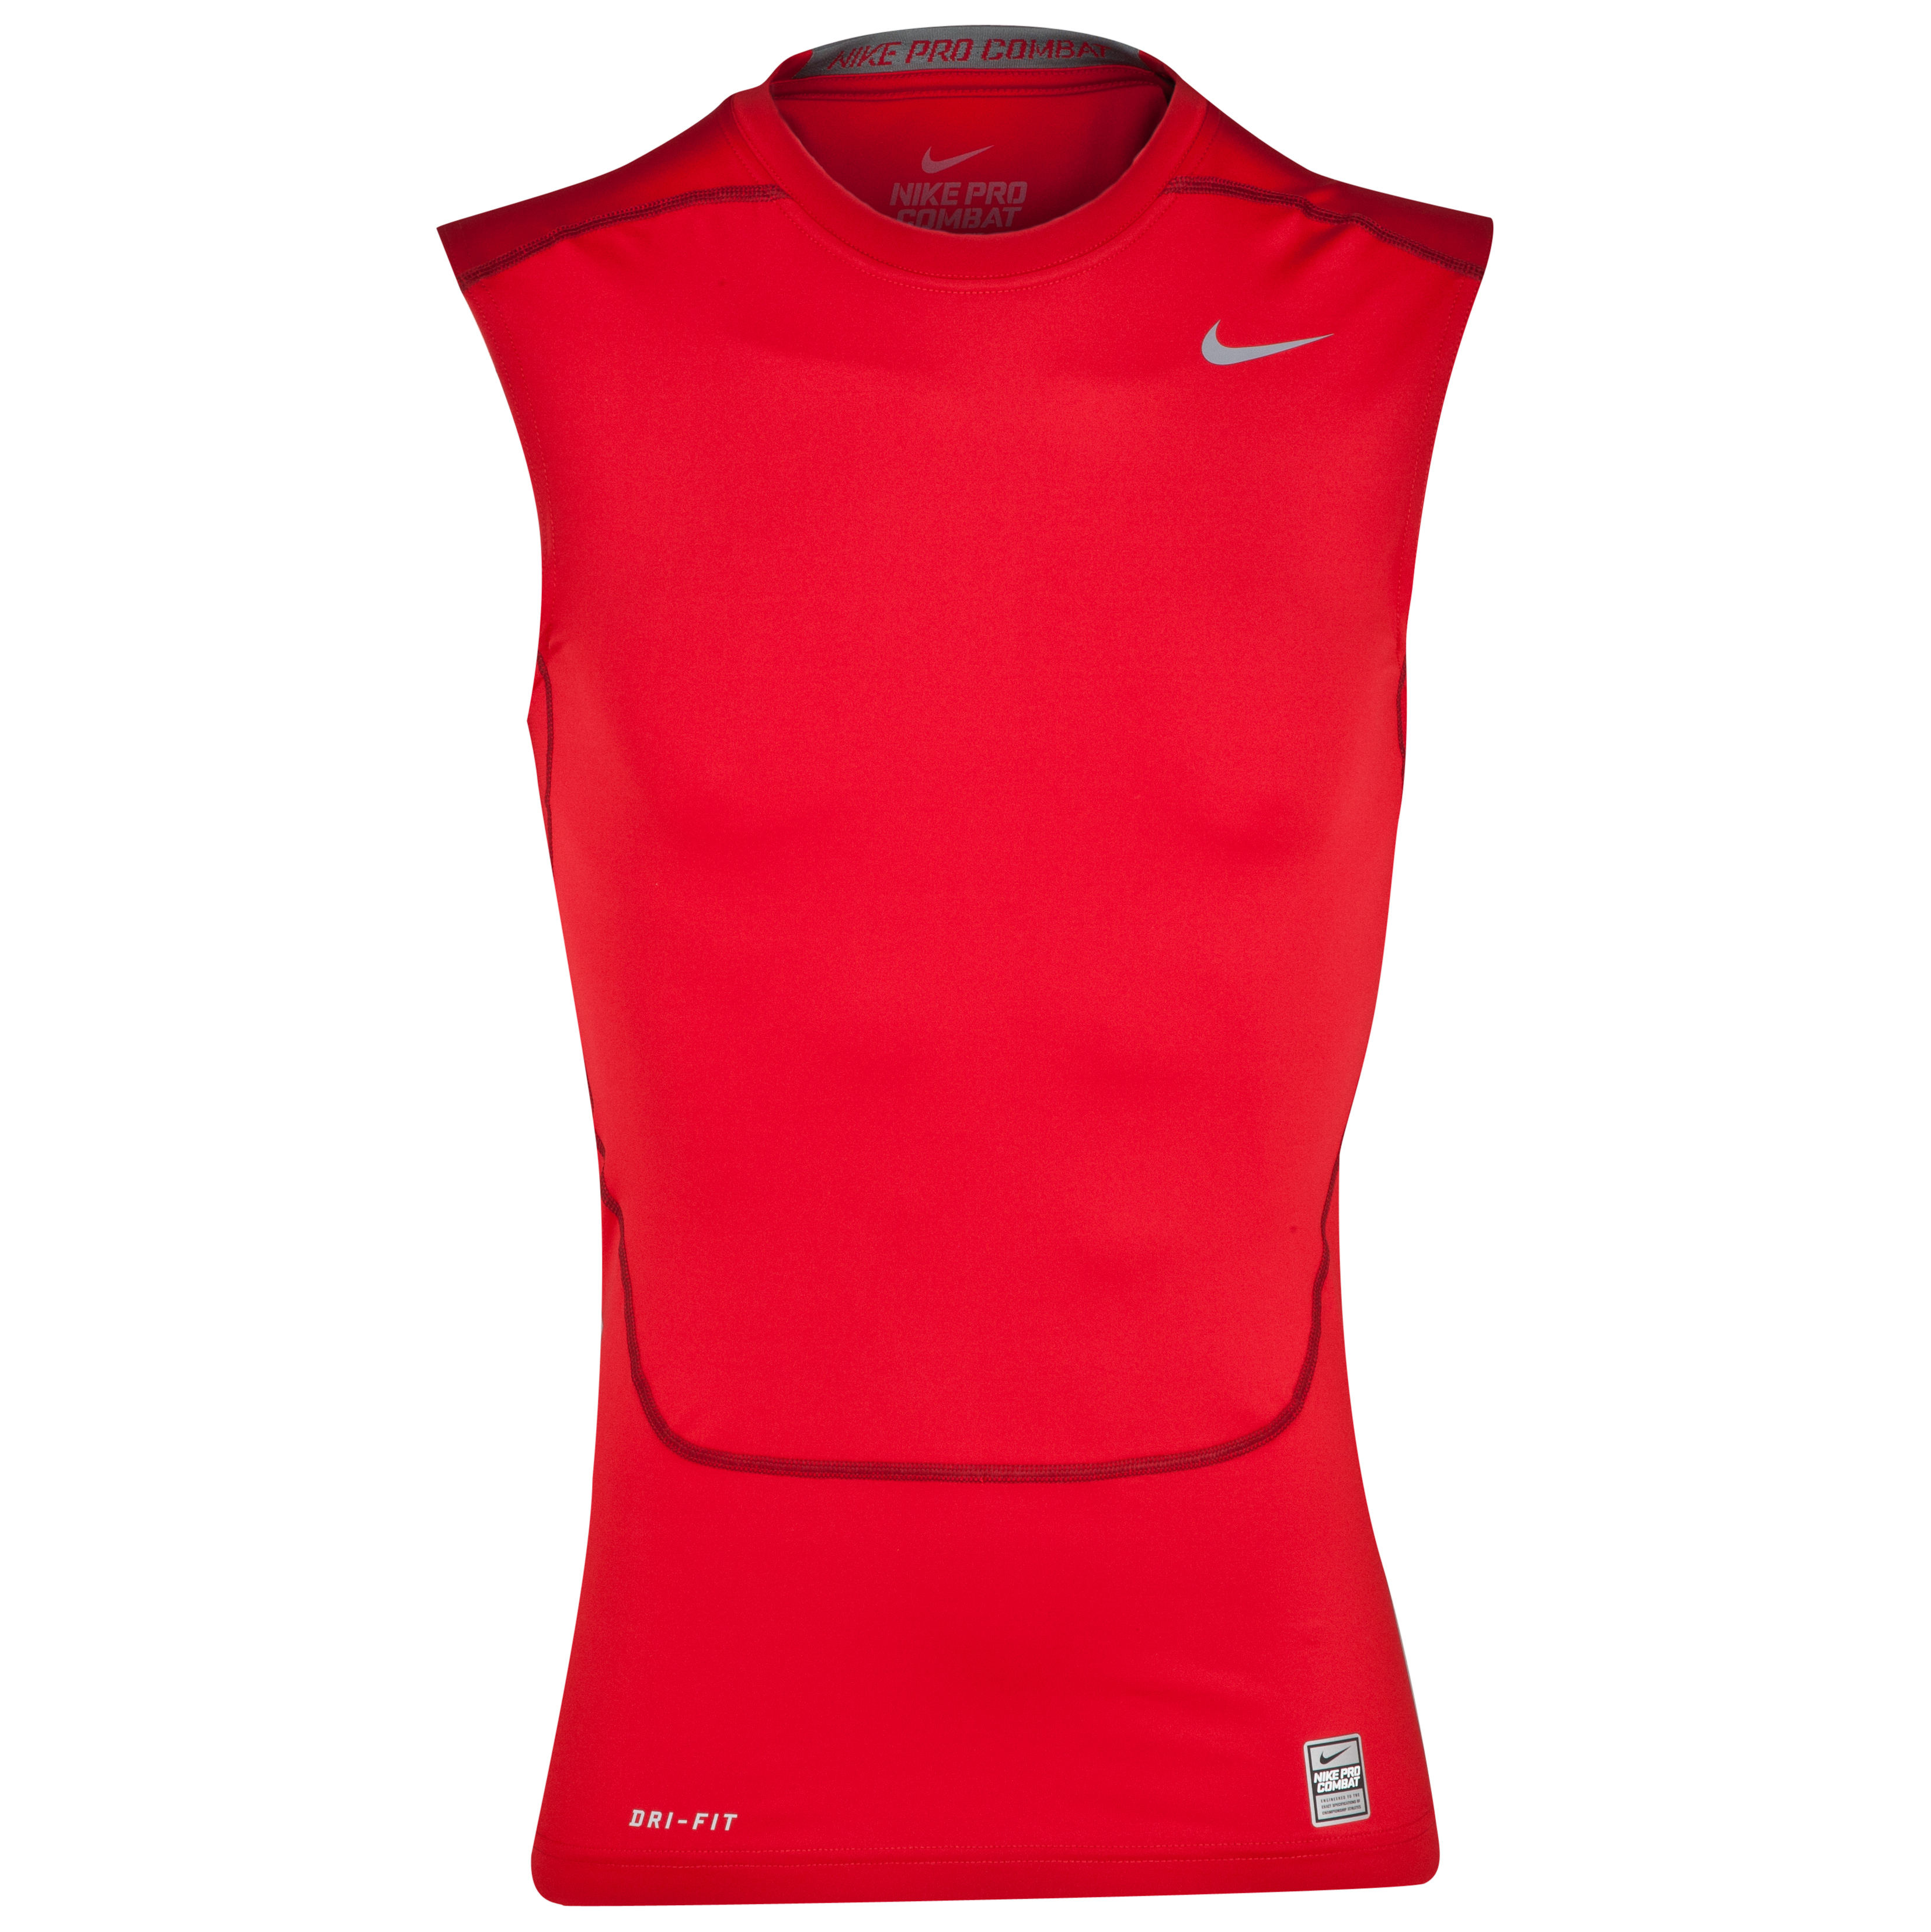 Nike Pro Combat Core Base Layer Top - Sleeveless Red